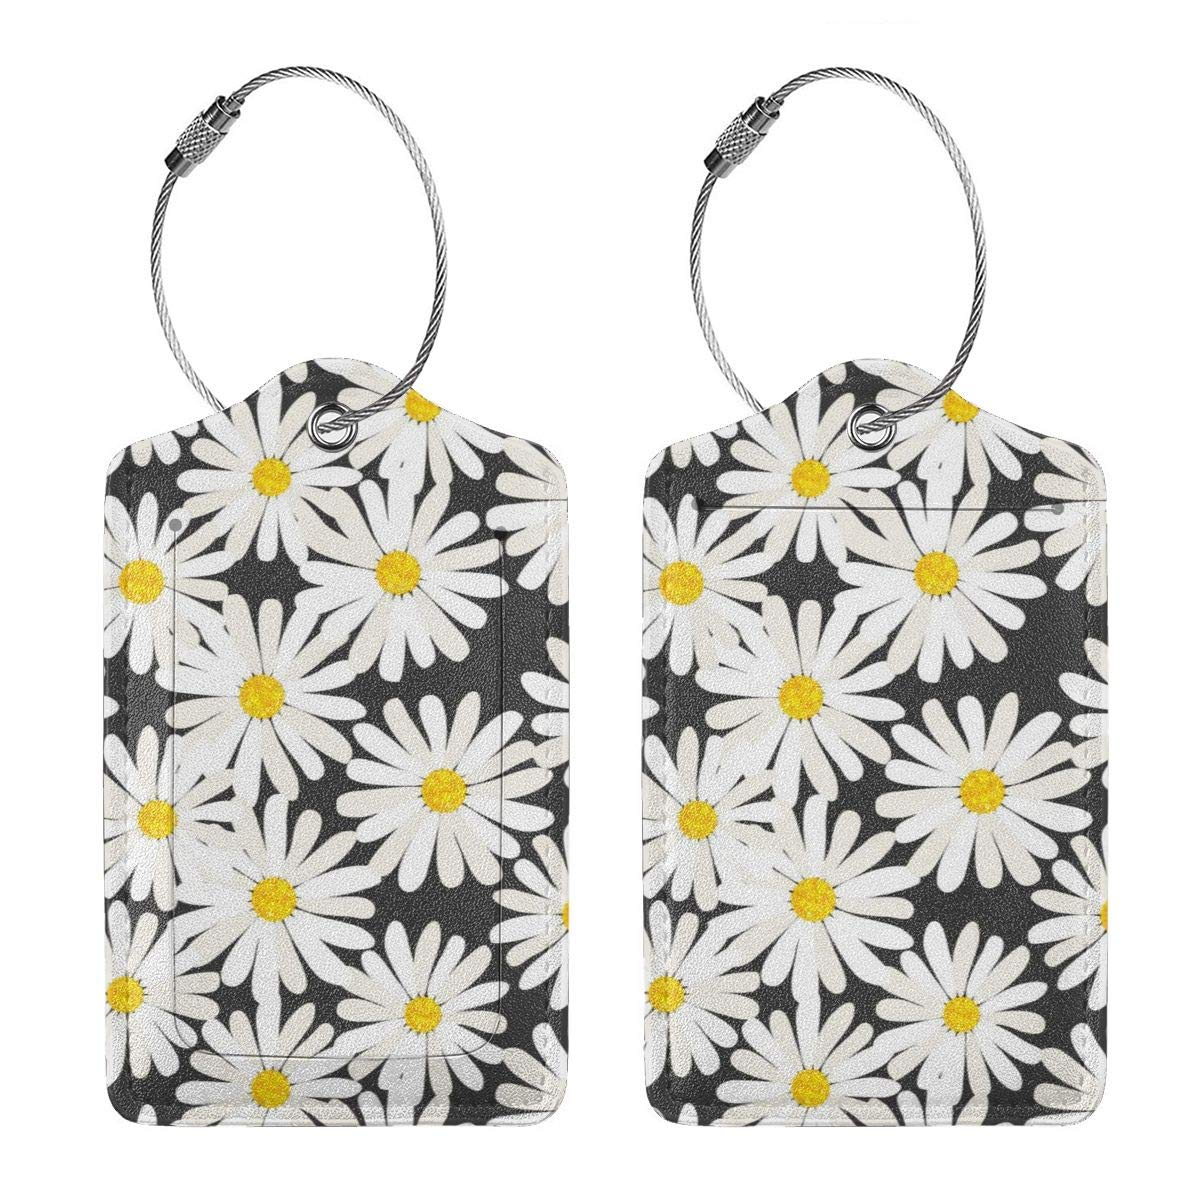 GoldK Little Daisy Leather Luggage Tags Baggage Bag Instrument Tag Travel Labels Accessories with Privacy Cover